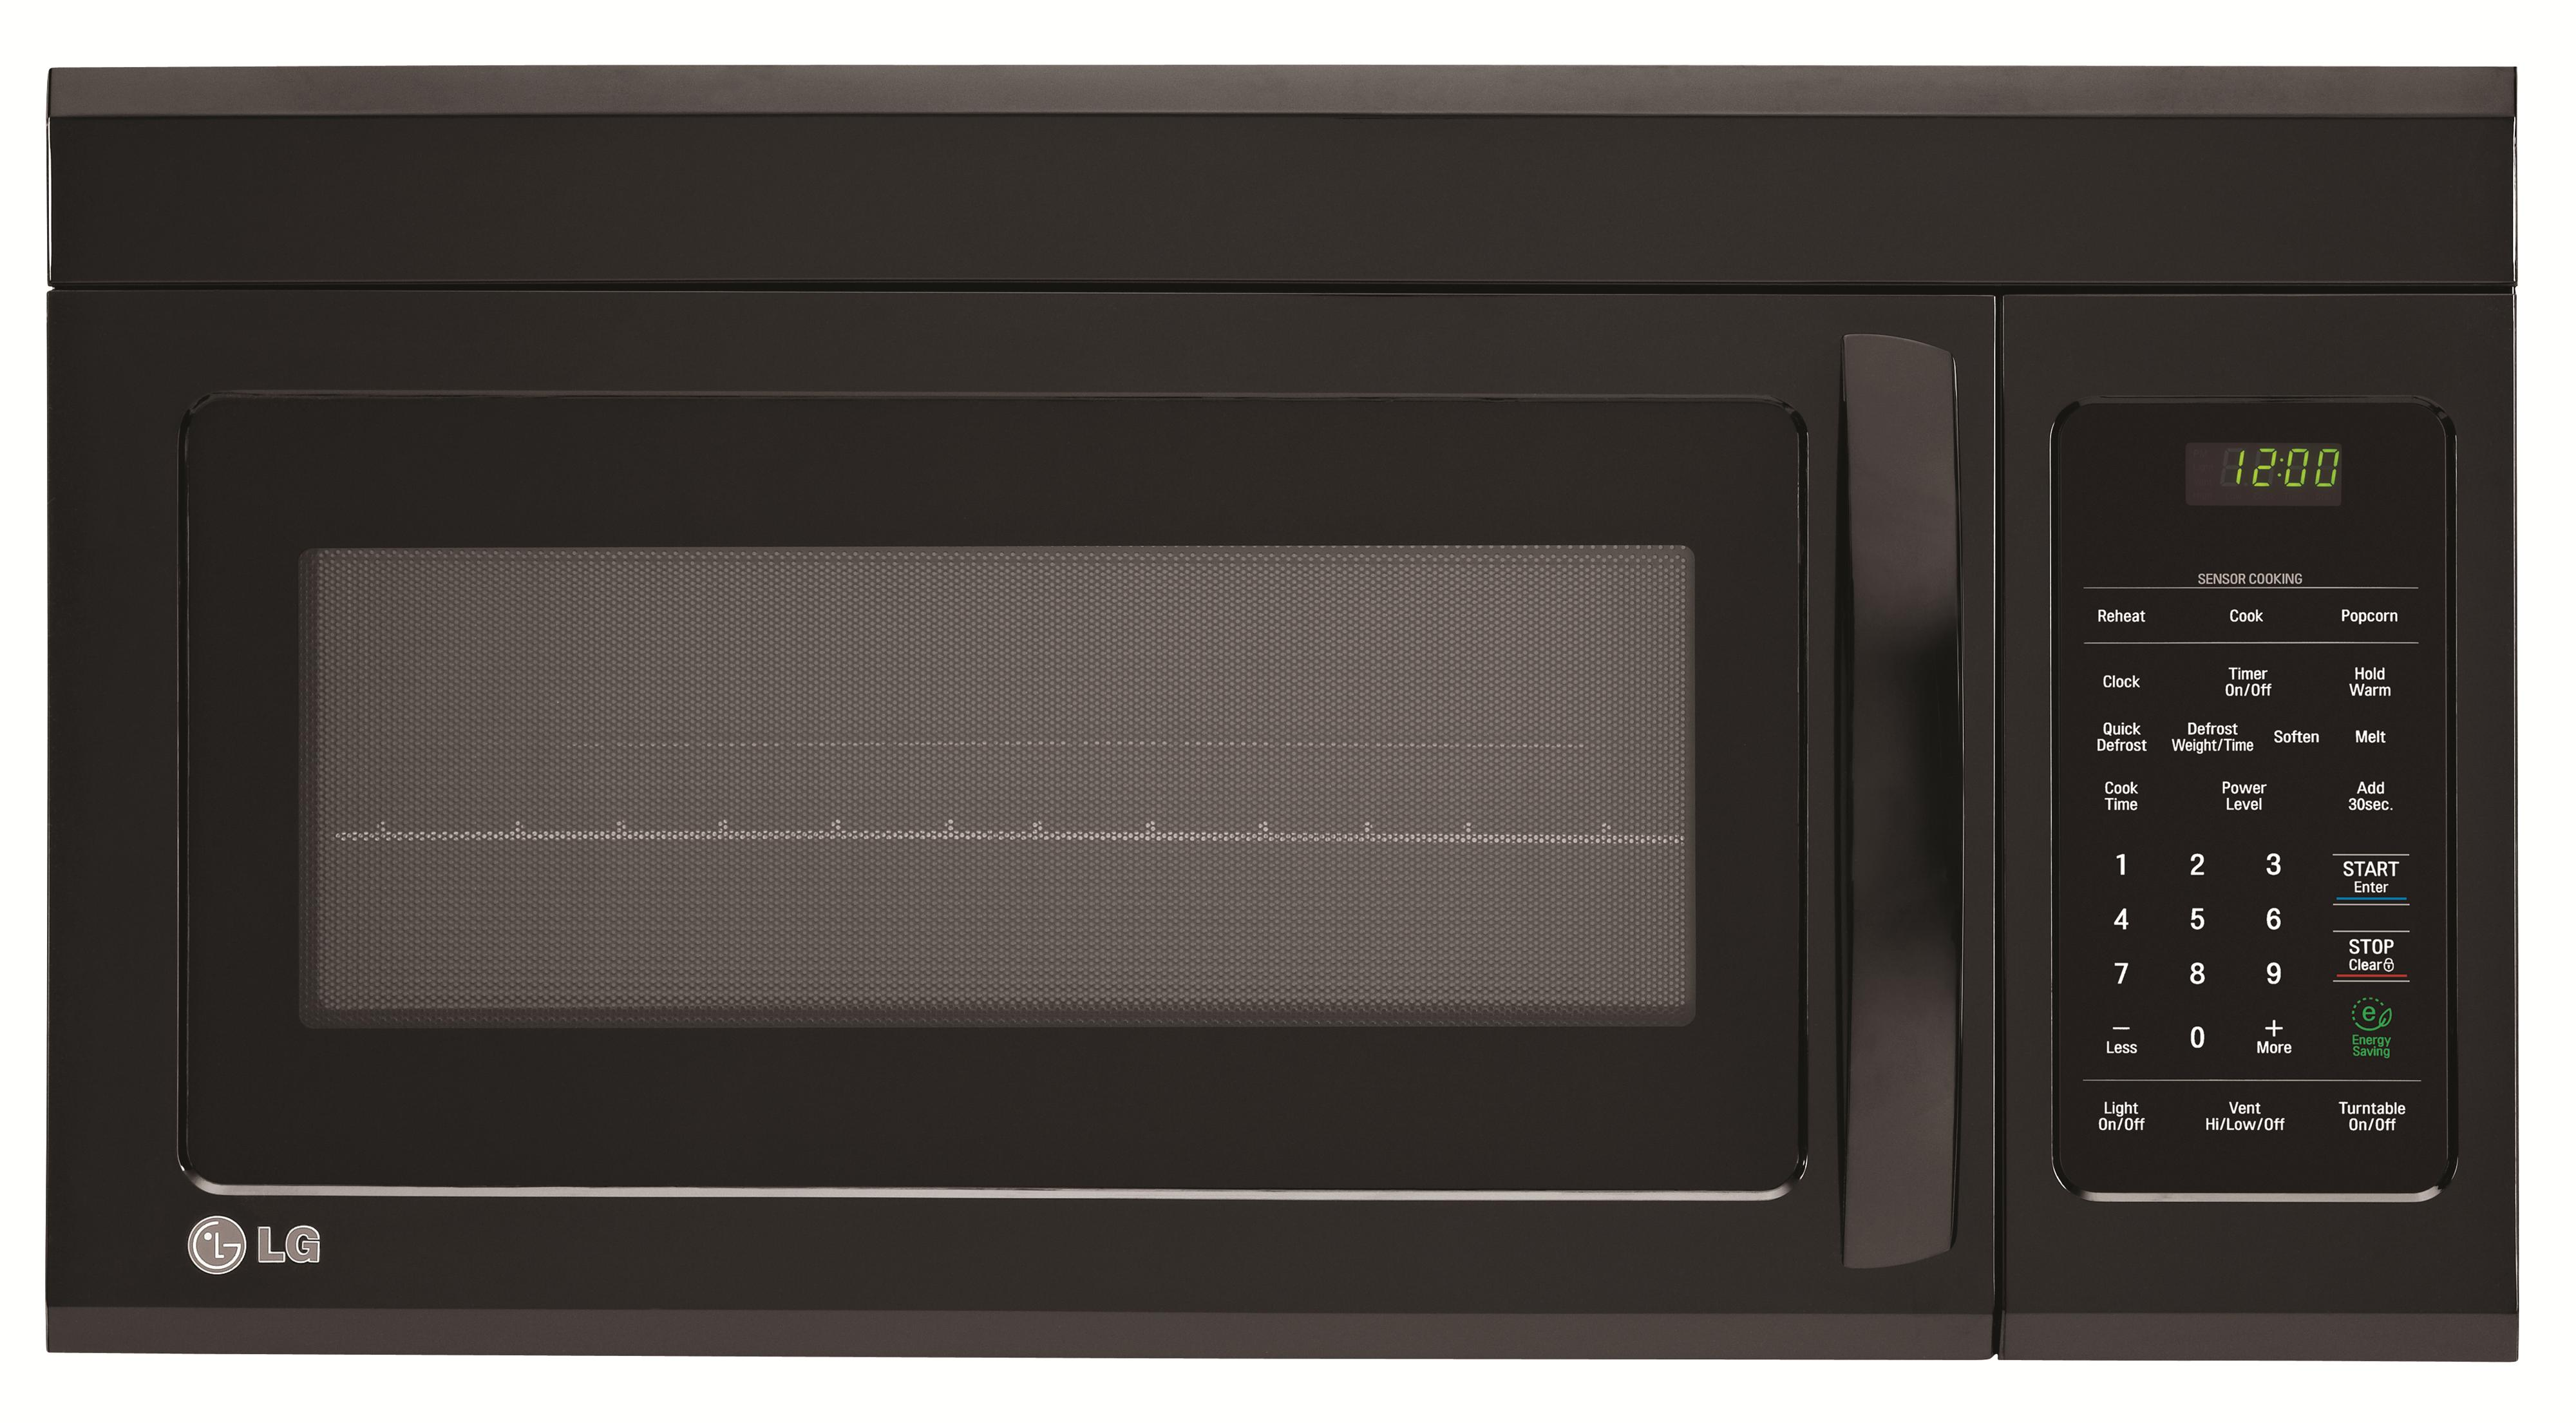 LG Appliances Microwaves 1.8 cu.ft. Over-the-Range Microwave Oven - Item Number: LMV1831SB